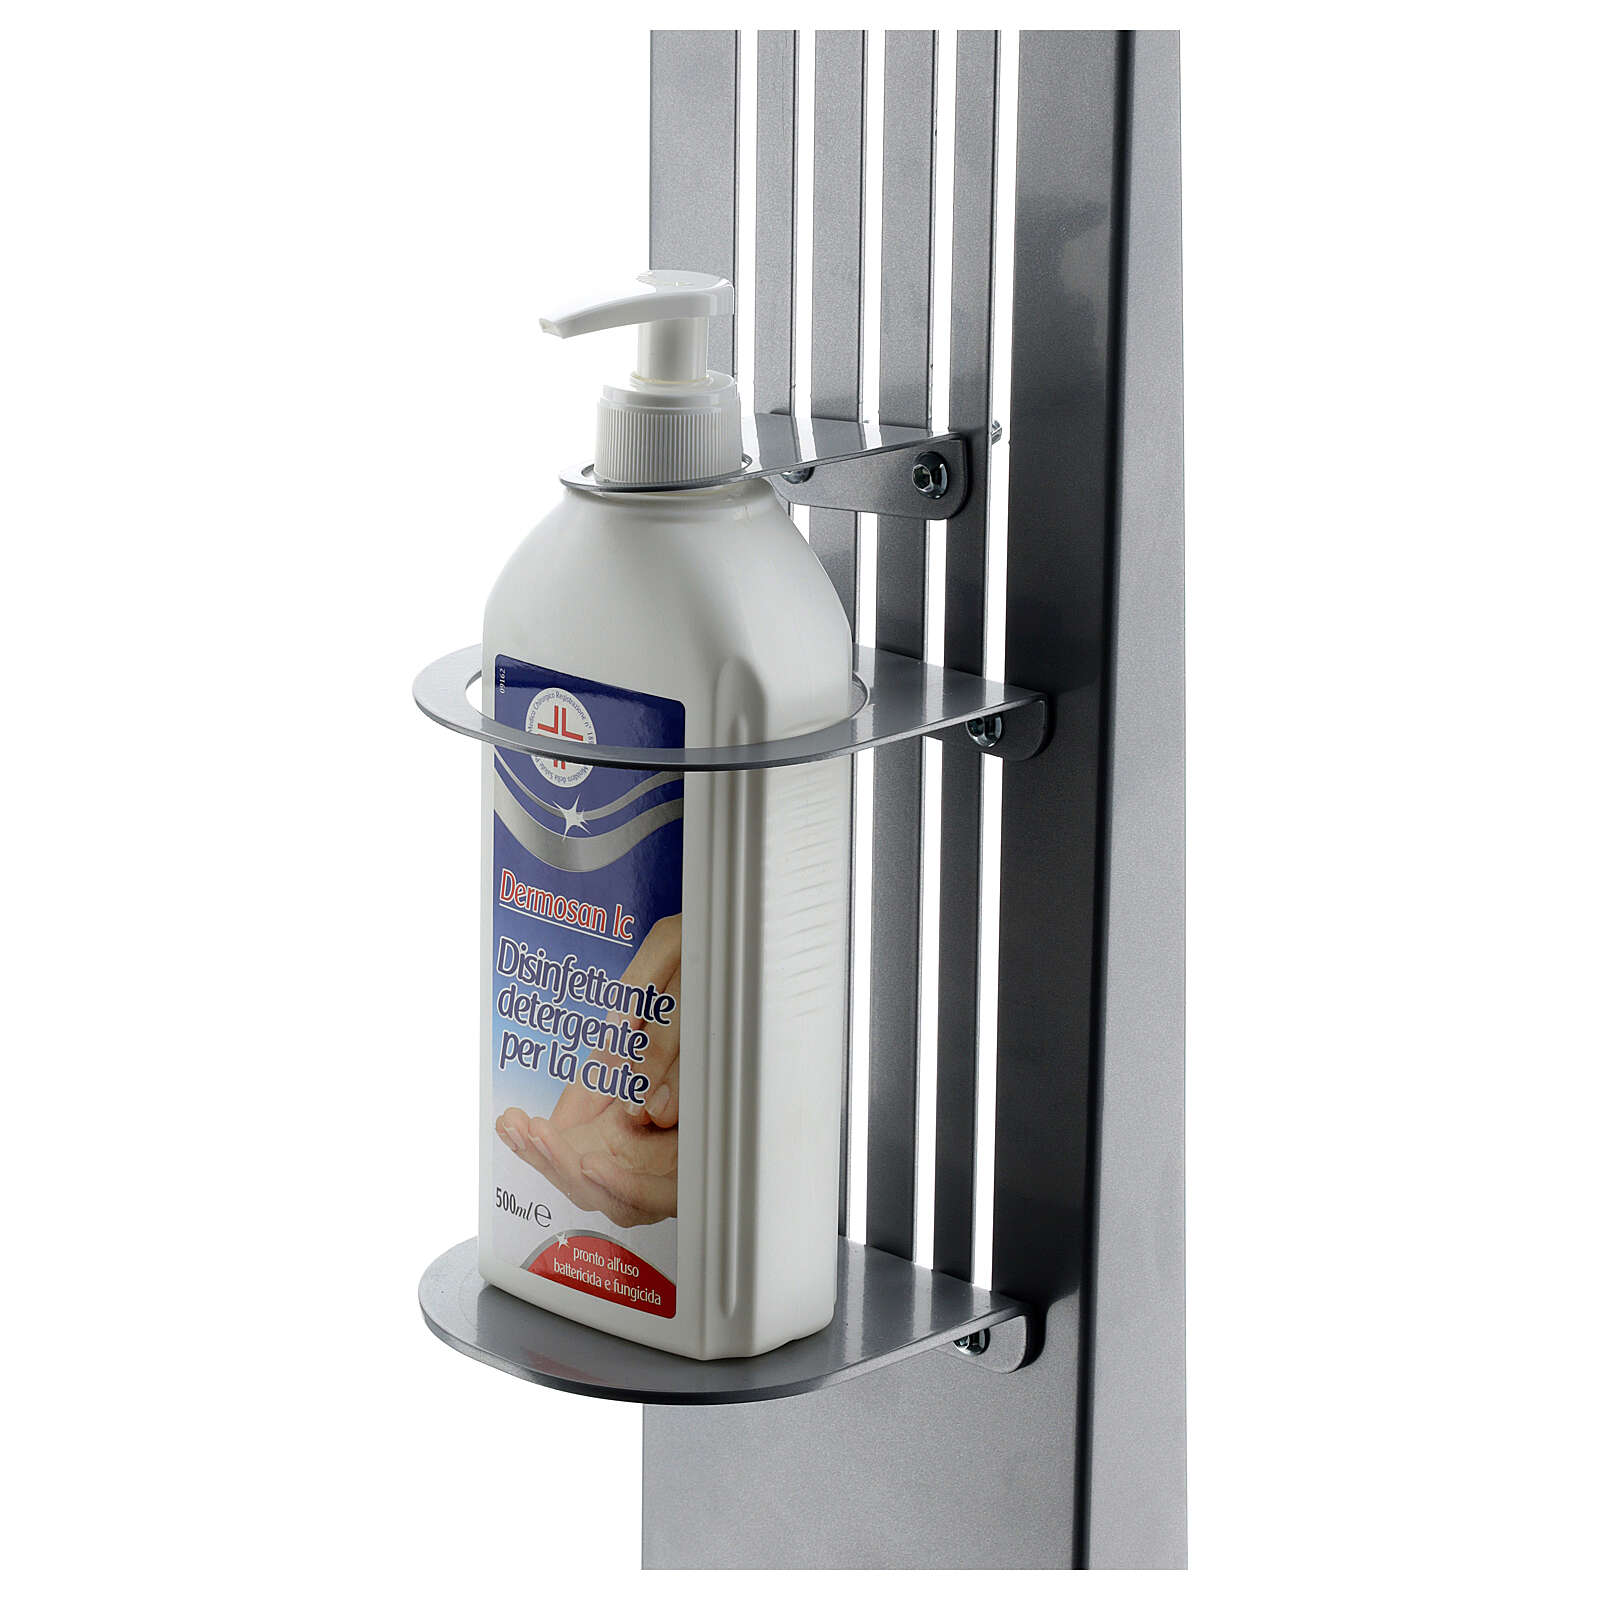 Outodoor adjustable hand sanitizer dispenser stand in metal 3